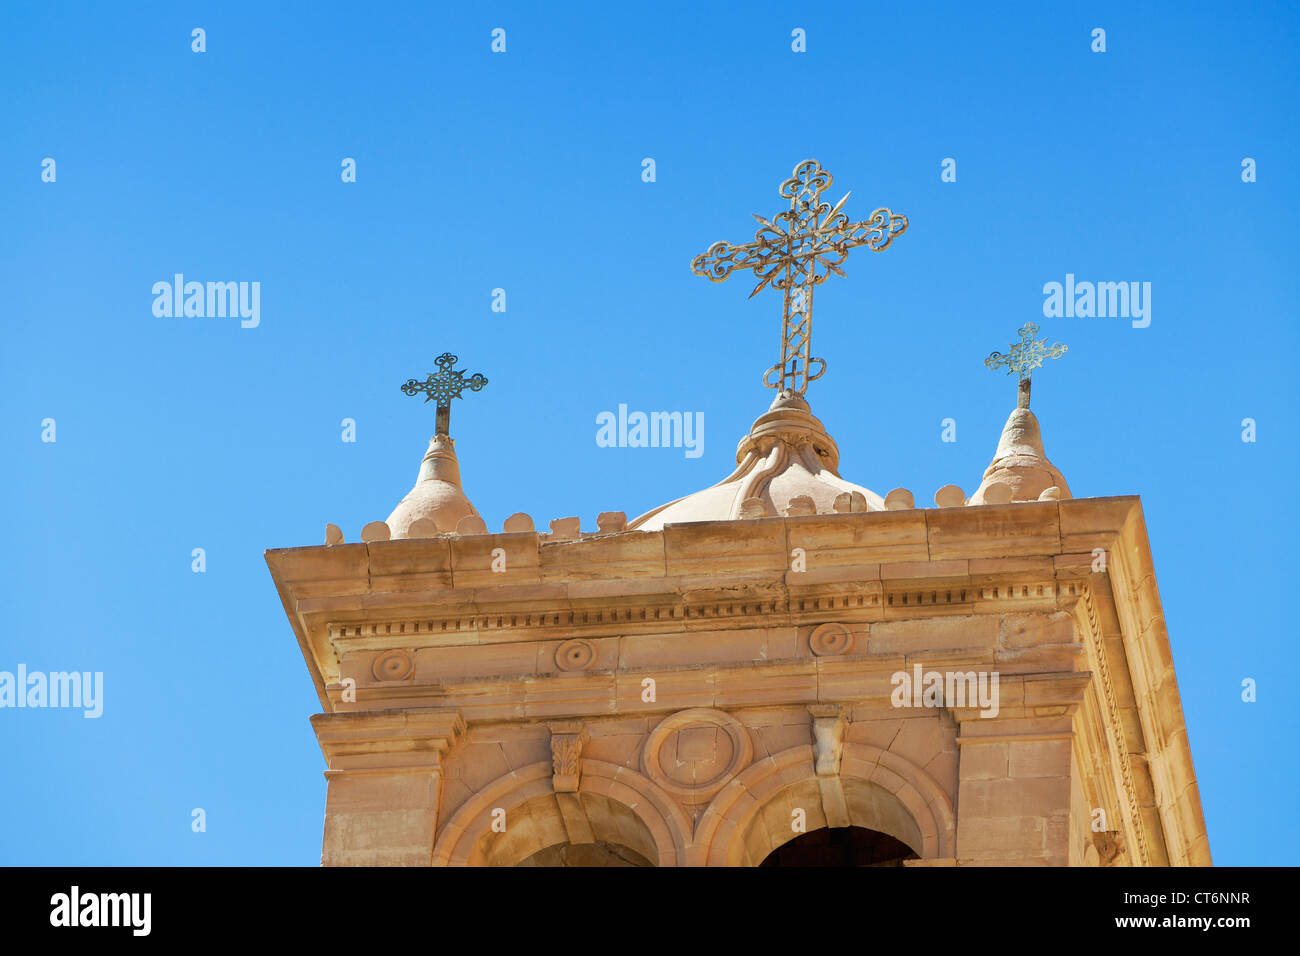 Detail of the bell tower of the Church of the transfiguration at St Catherine monastery,Sinai, Egypt - Stock Image